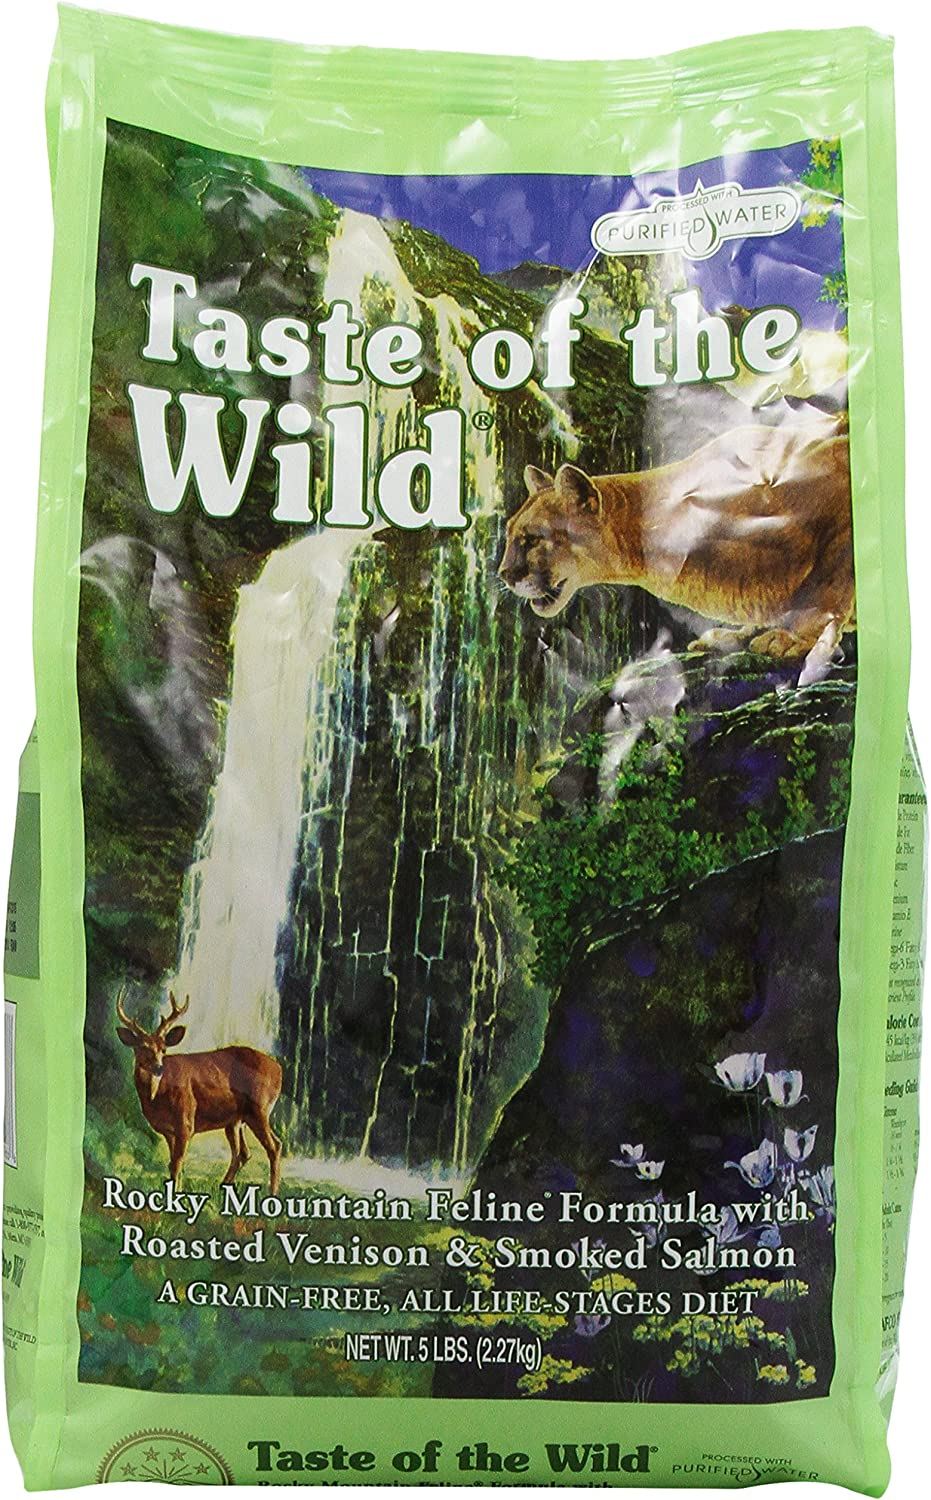 Taste Of The Wild Dry Cat Food, Rocky Mountain Feline Formula With Roasted Venison And Smoked Salmon, 5 Pound